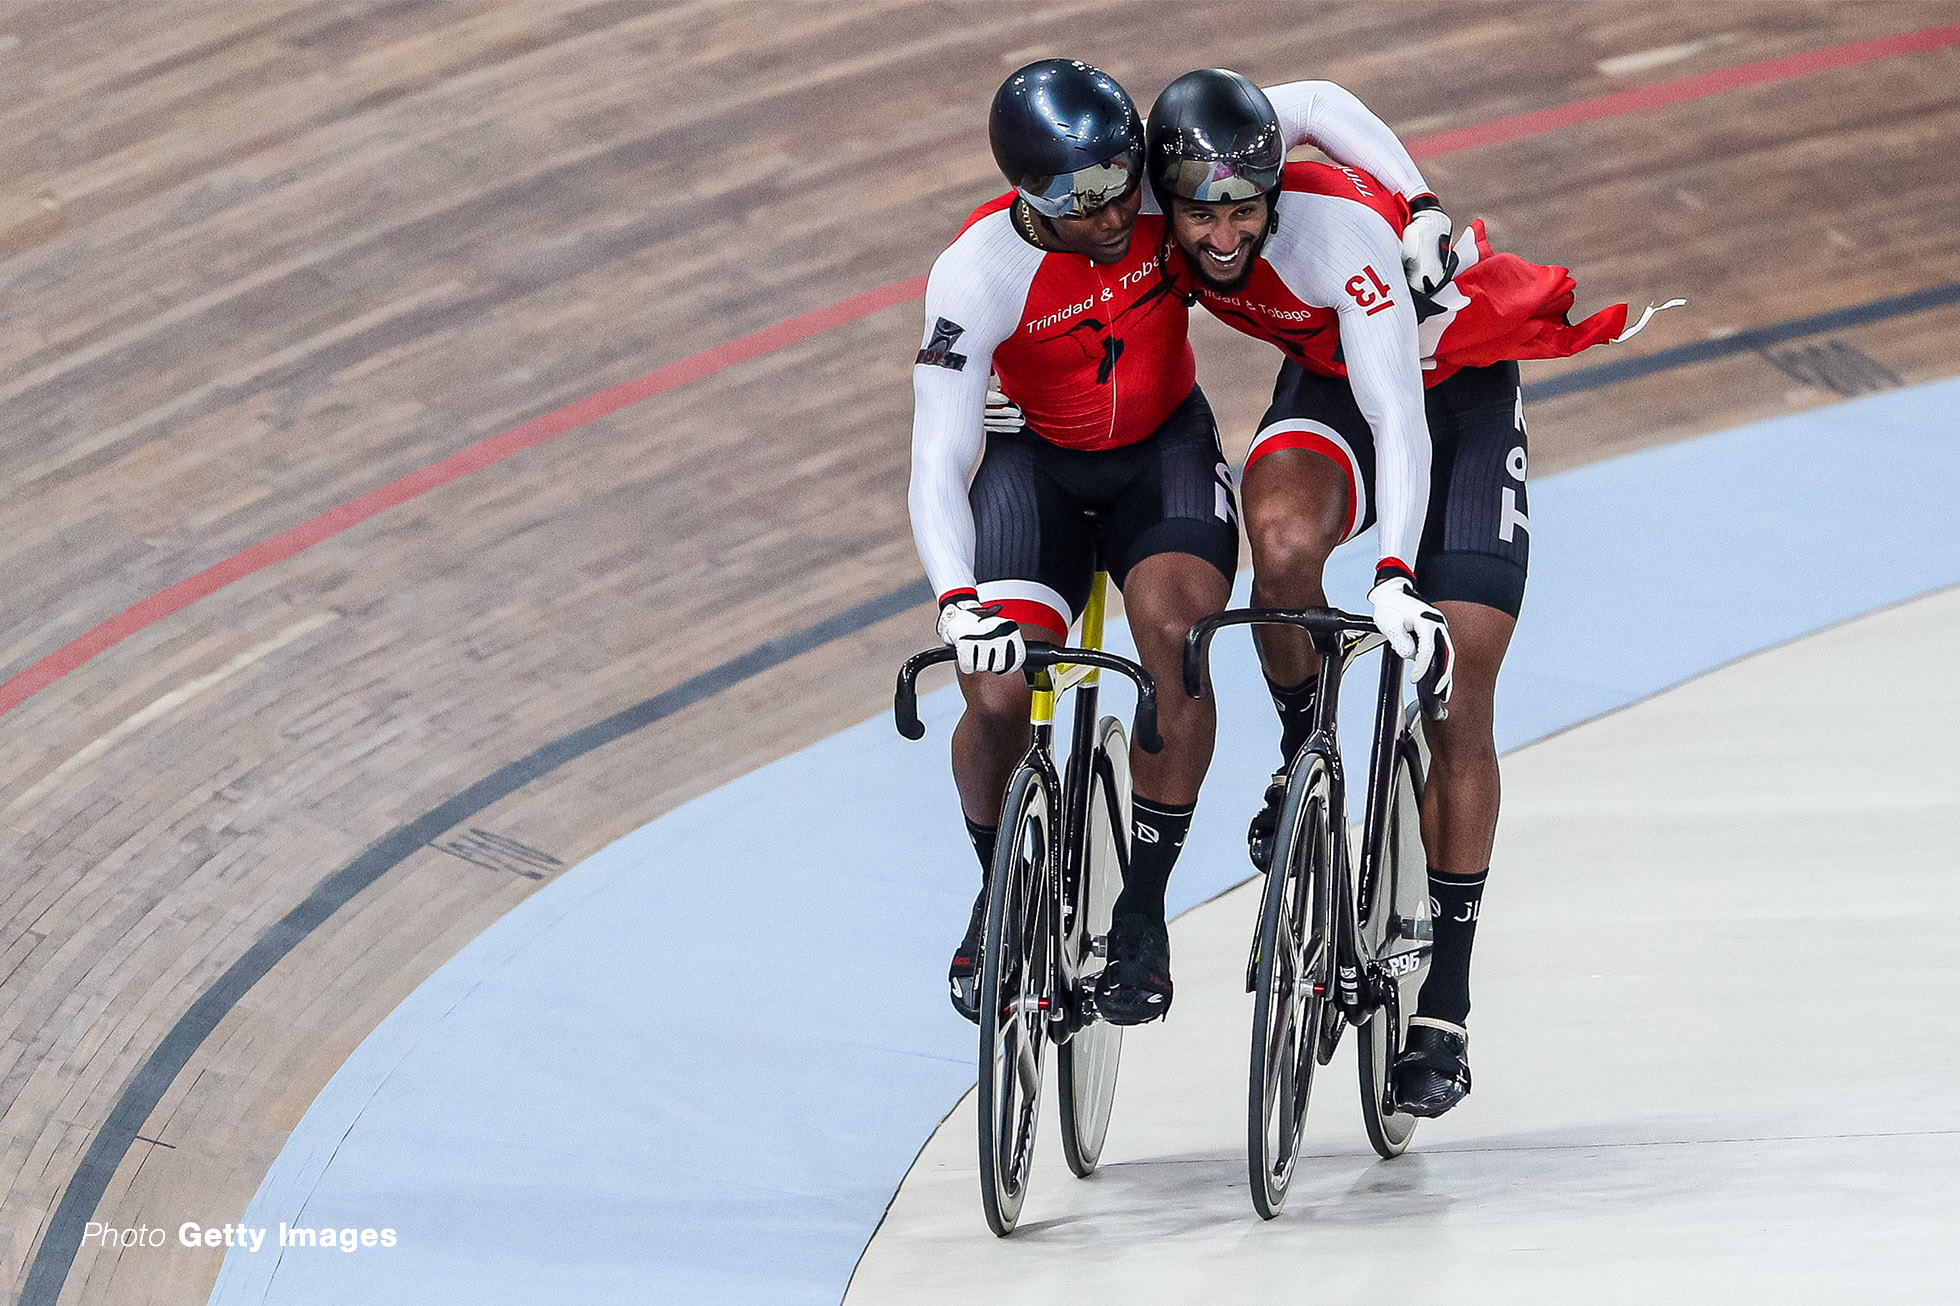 LIMA, PERU - AUGUST 03: Nicholas Paul (L) and Njianse Philip of Trinidad and Tobago celebrate after the final race in cycling track Sprint Men Finals Gold at Velodrome of VIDENA on Day 8 of Lima 2019 Pan American Games on August 03, 2019 in Lima, Peru. (Photo by Buda Mendes/Getty Images)